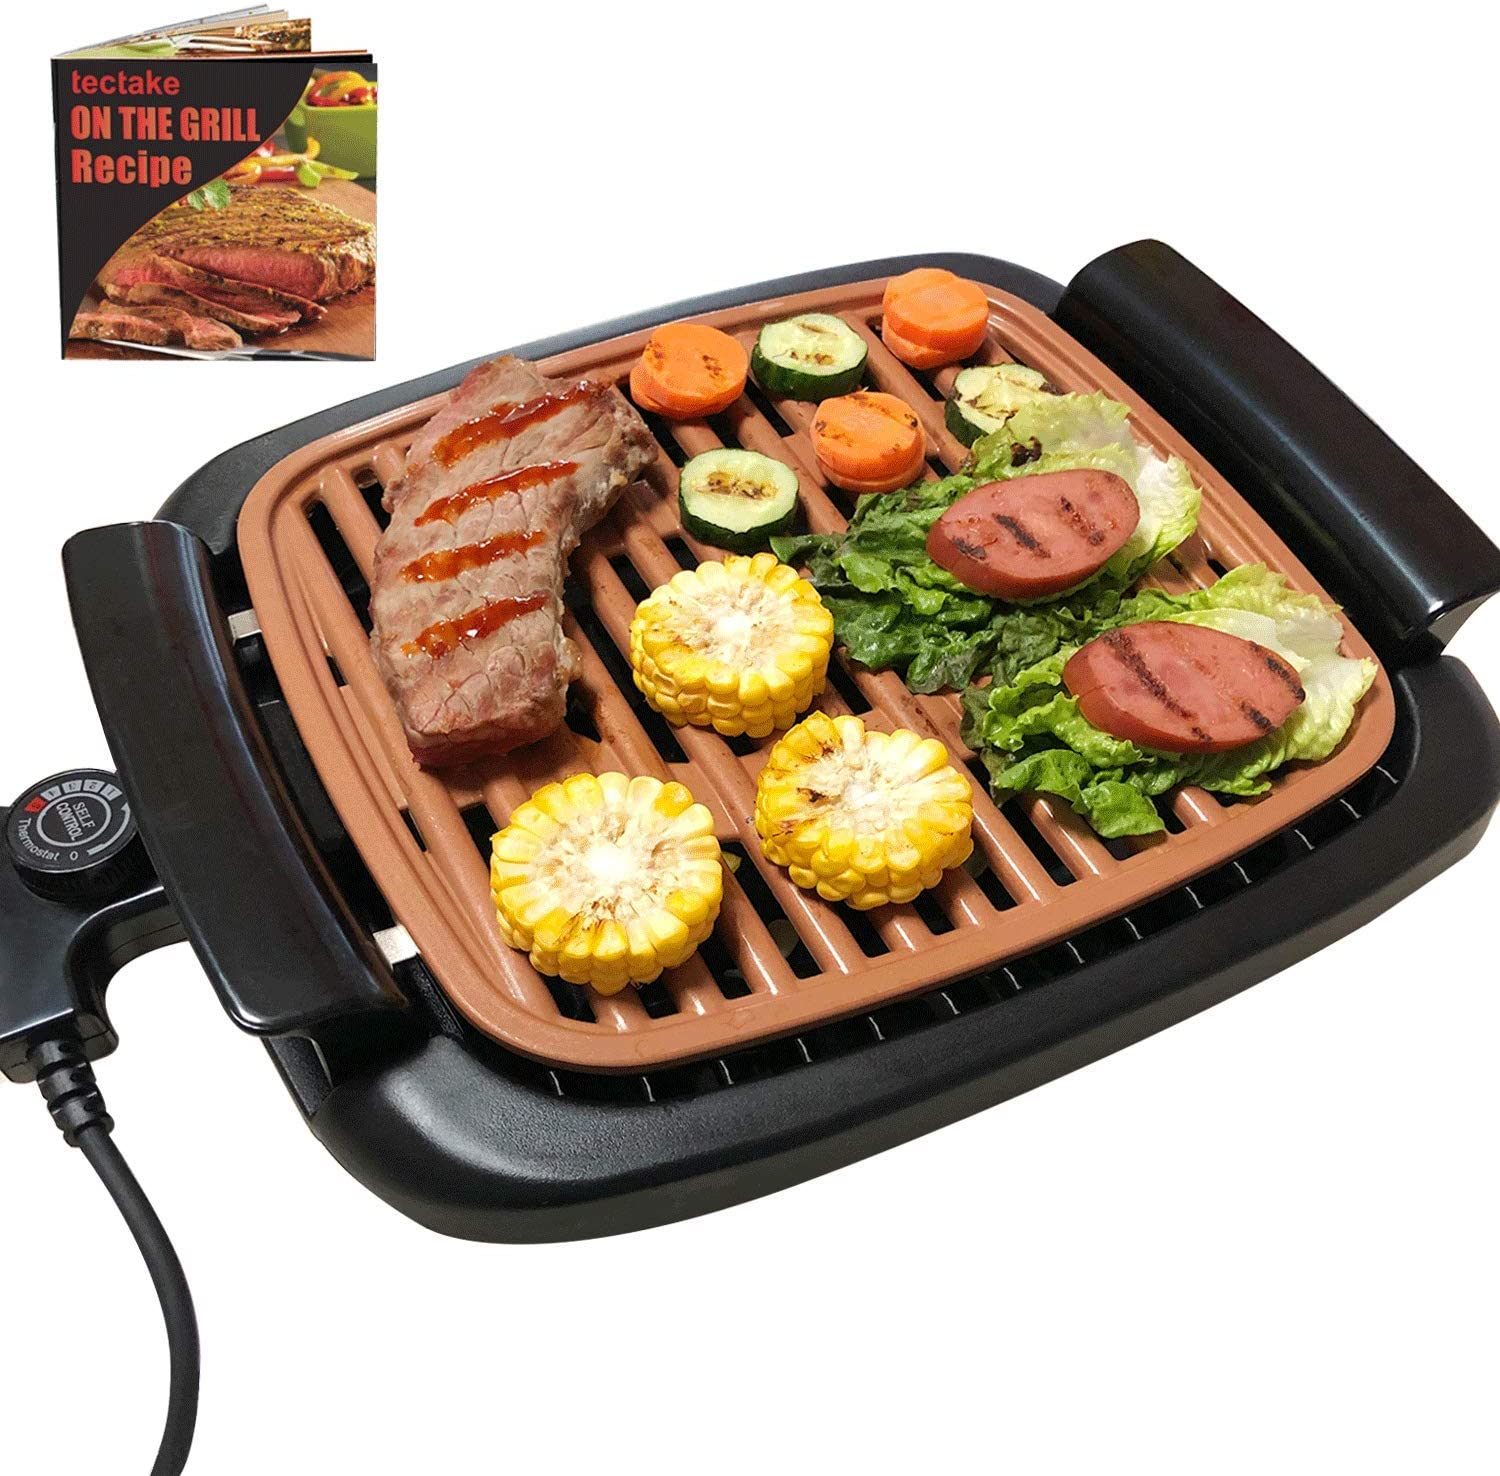 "Korea Grill Indoor Removable - Electric Smokeless BBQ Griddle with Recipes, Adjustable Thermostat, 16"" x 11"" Large Nonstick Cooking Surfaces with Oil Drip Tray, Copper Tabletop Grills"